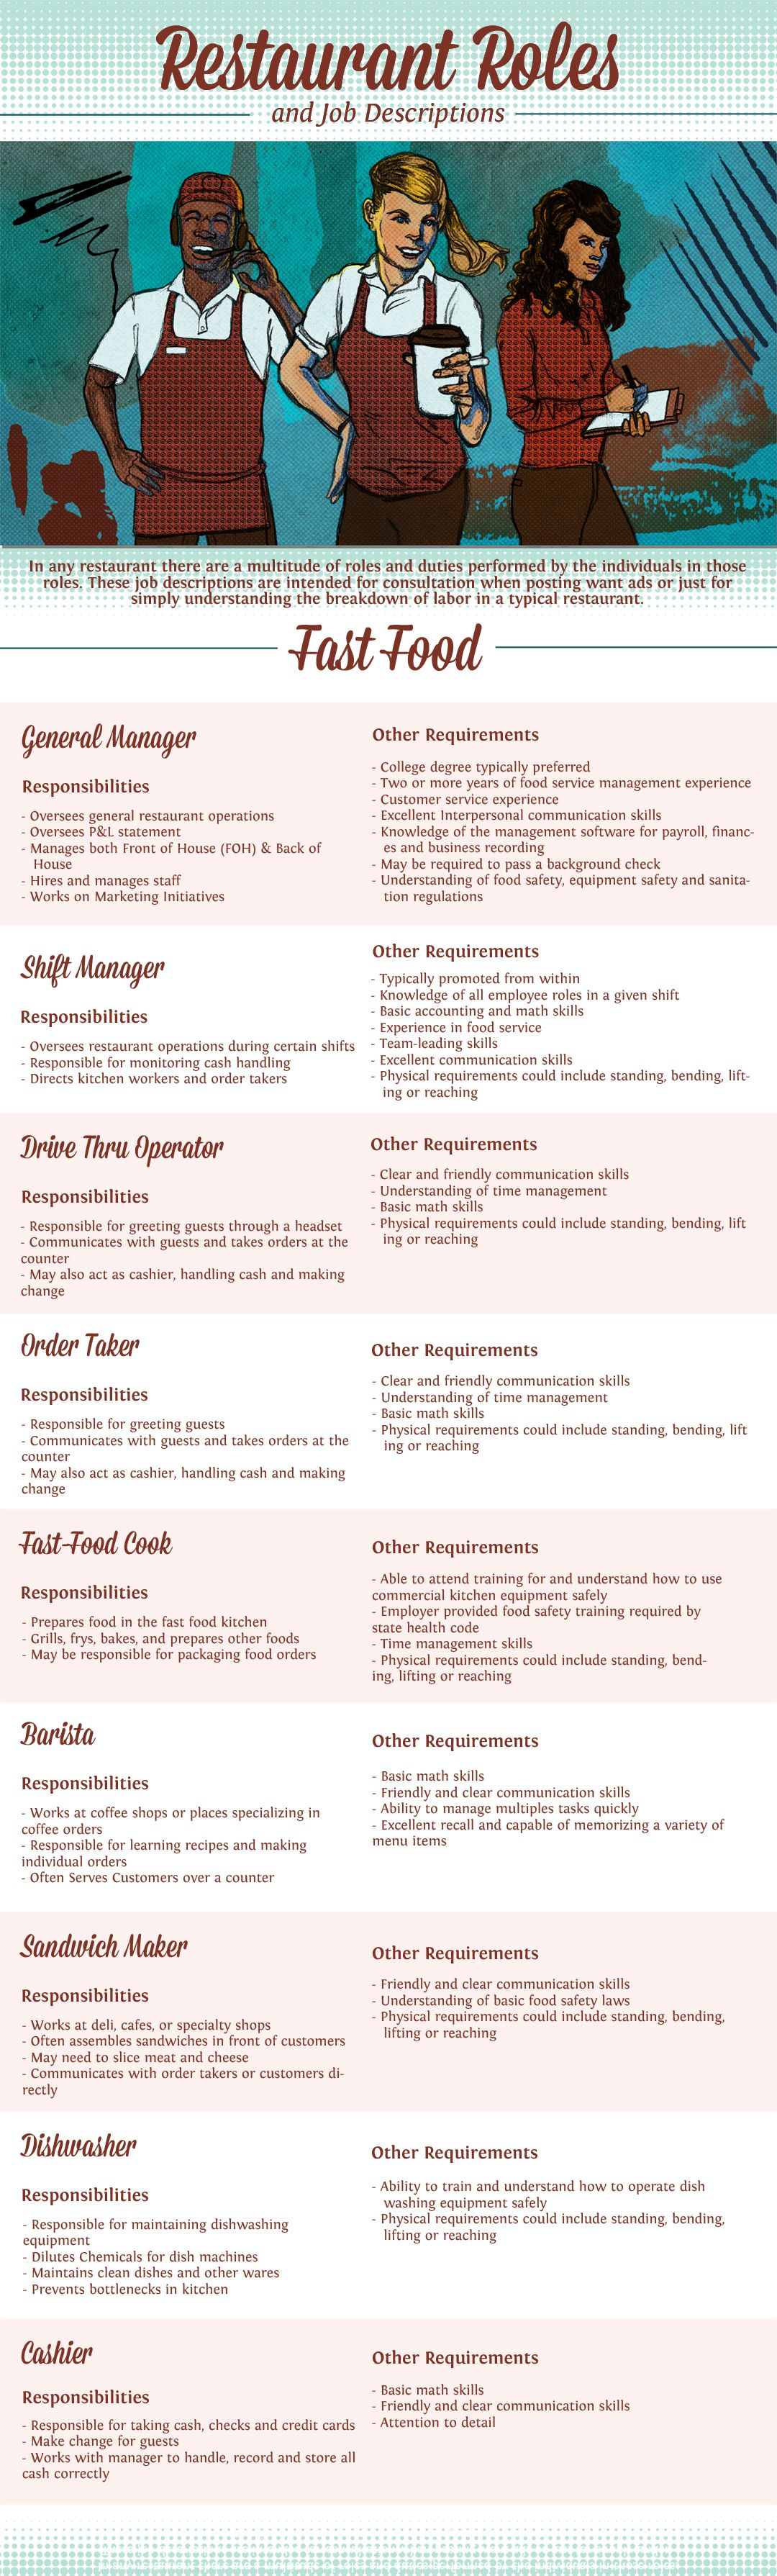 Fast Food Restaurant Job Descriptions | #Infographic | Infographic ...